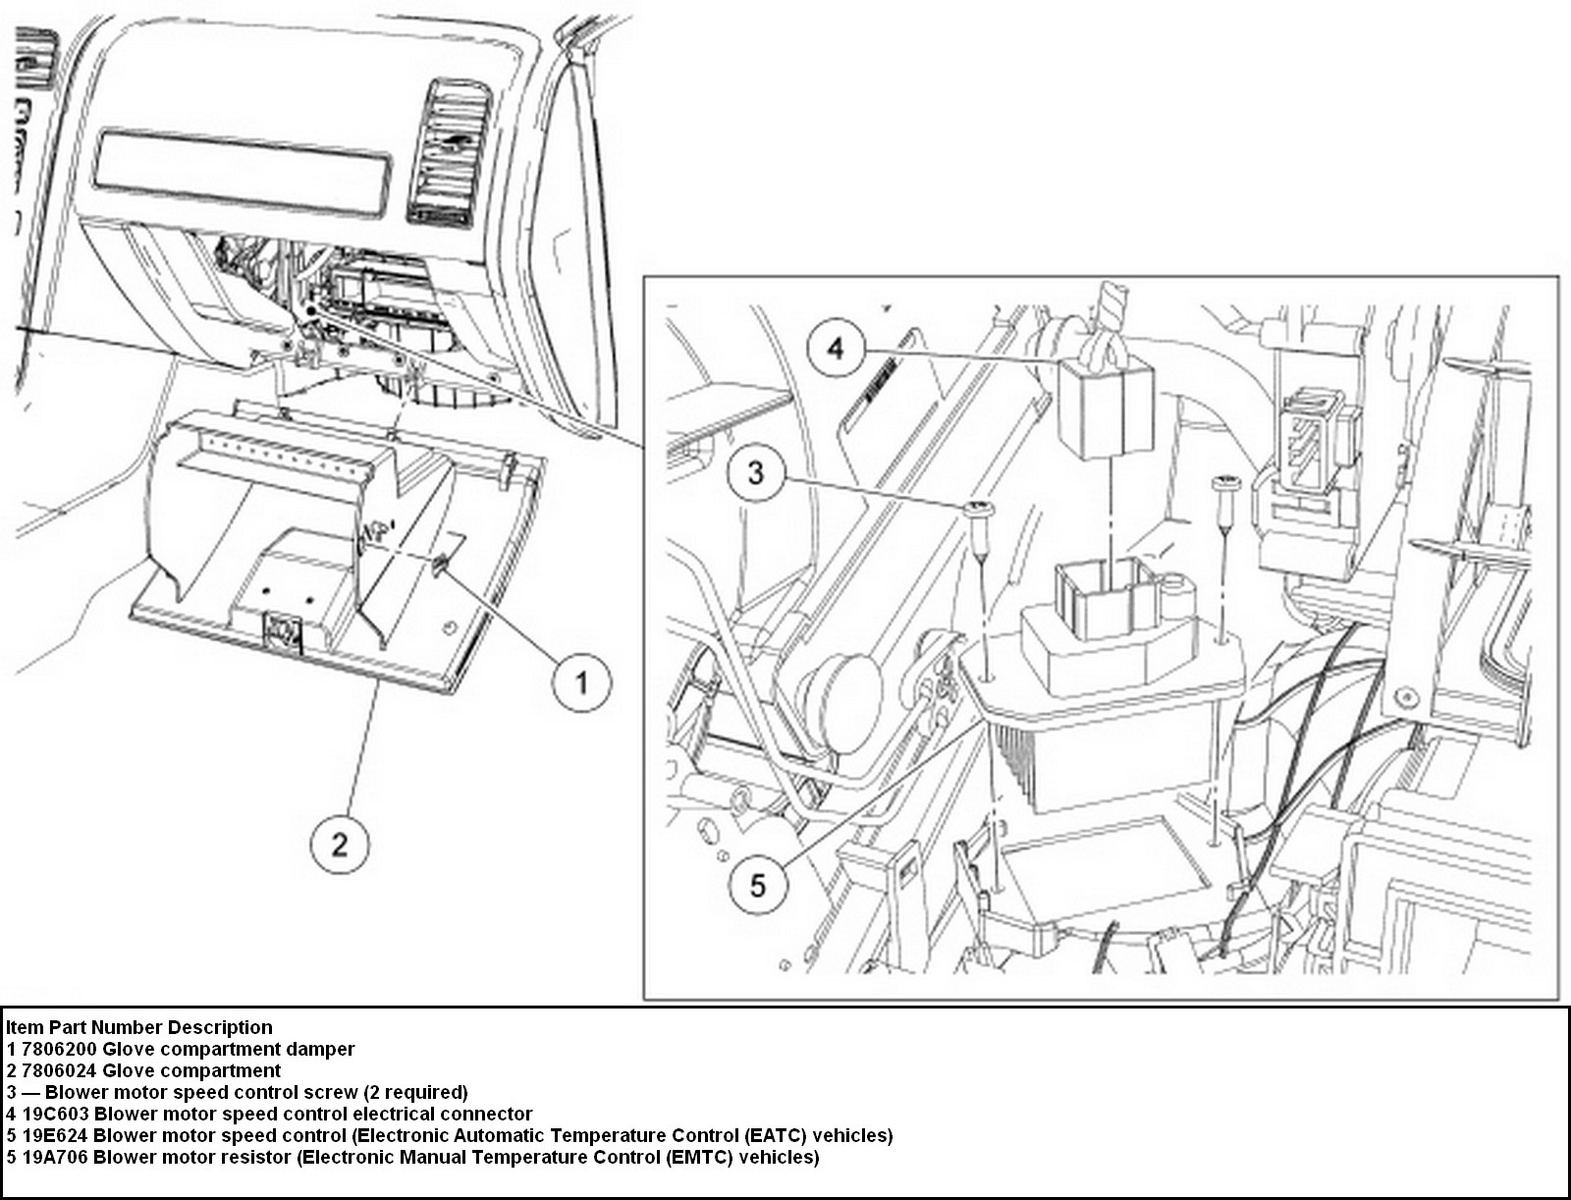 Ford Edge Questions How Do You Remove And Replaceinstall A Blower. Ford. 2008 Ford Edge Ac Duct Schematic At Scoala.co